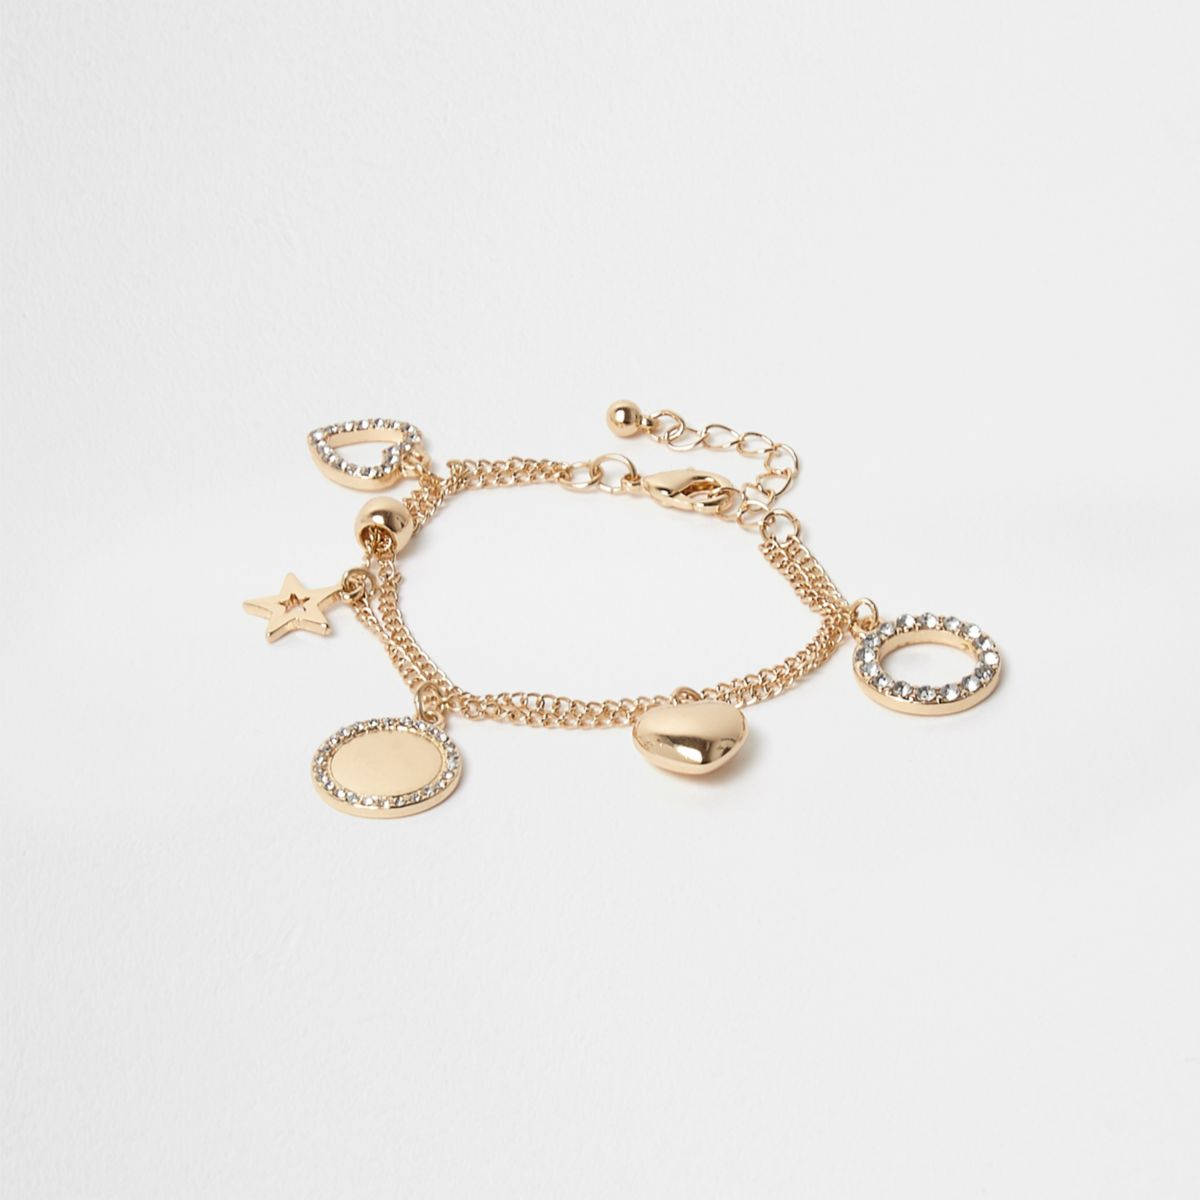 Girls gold tone charm bracelet - Jewellery - Accessories - girls